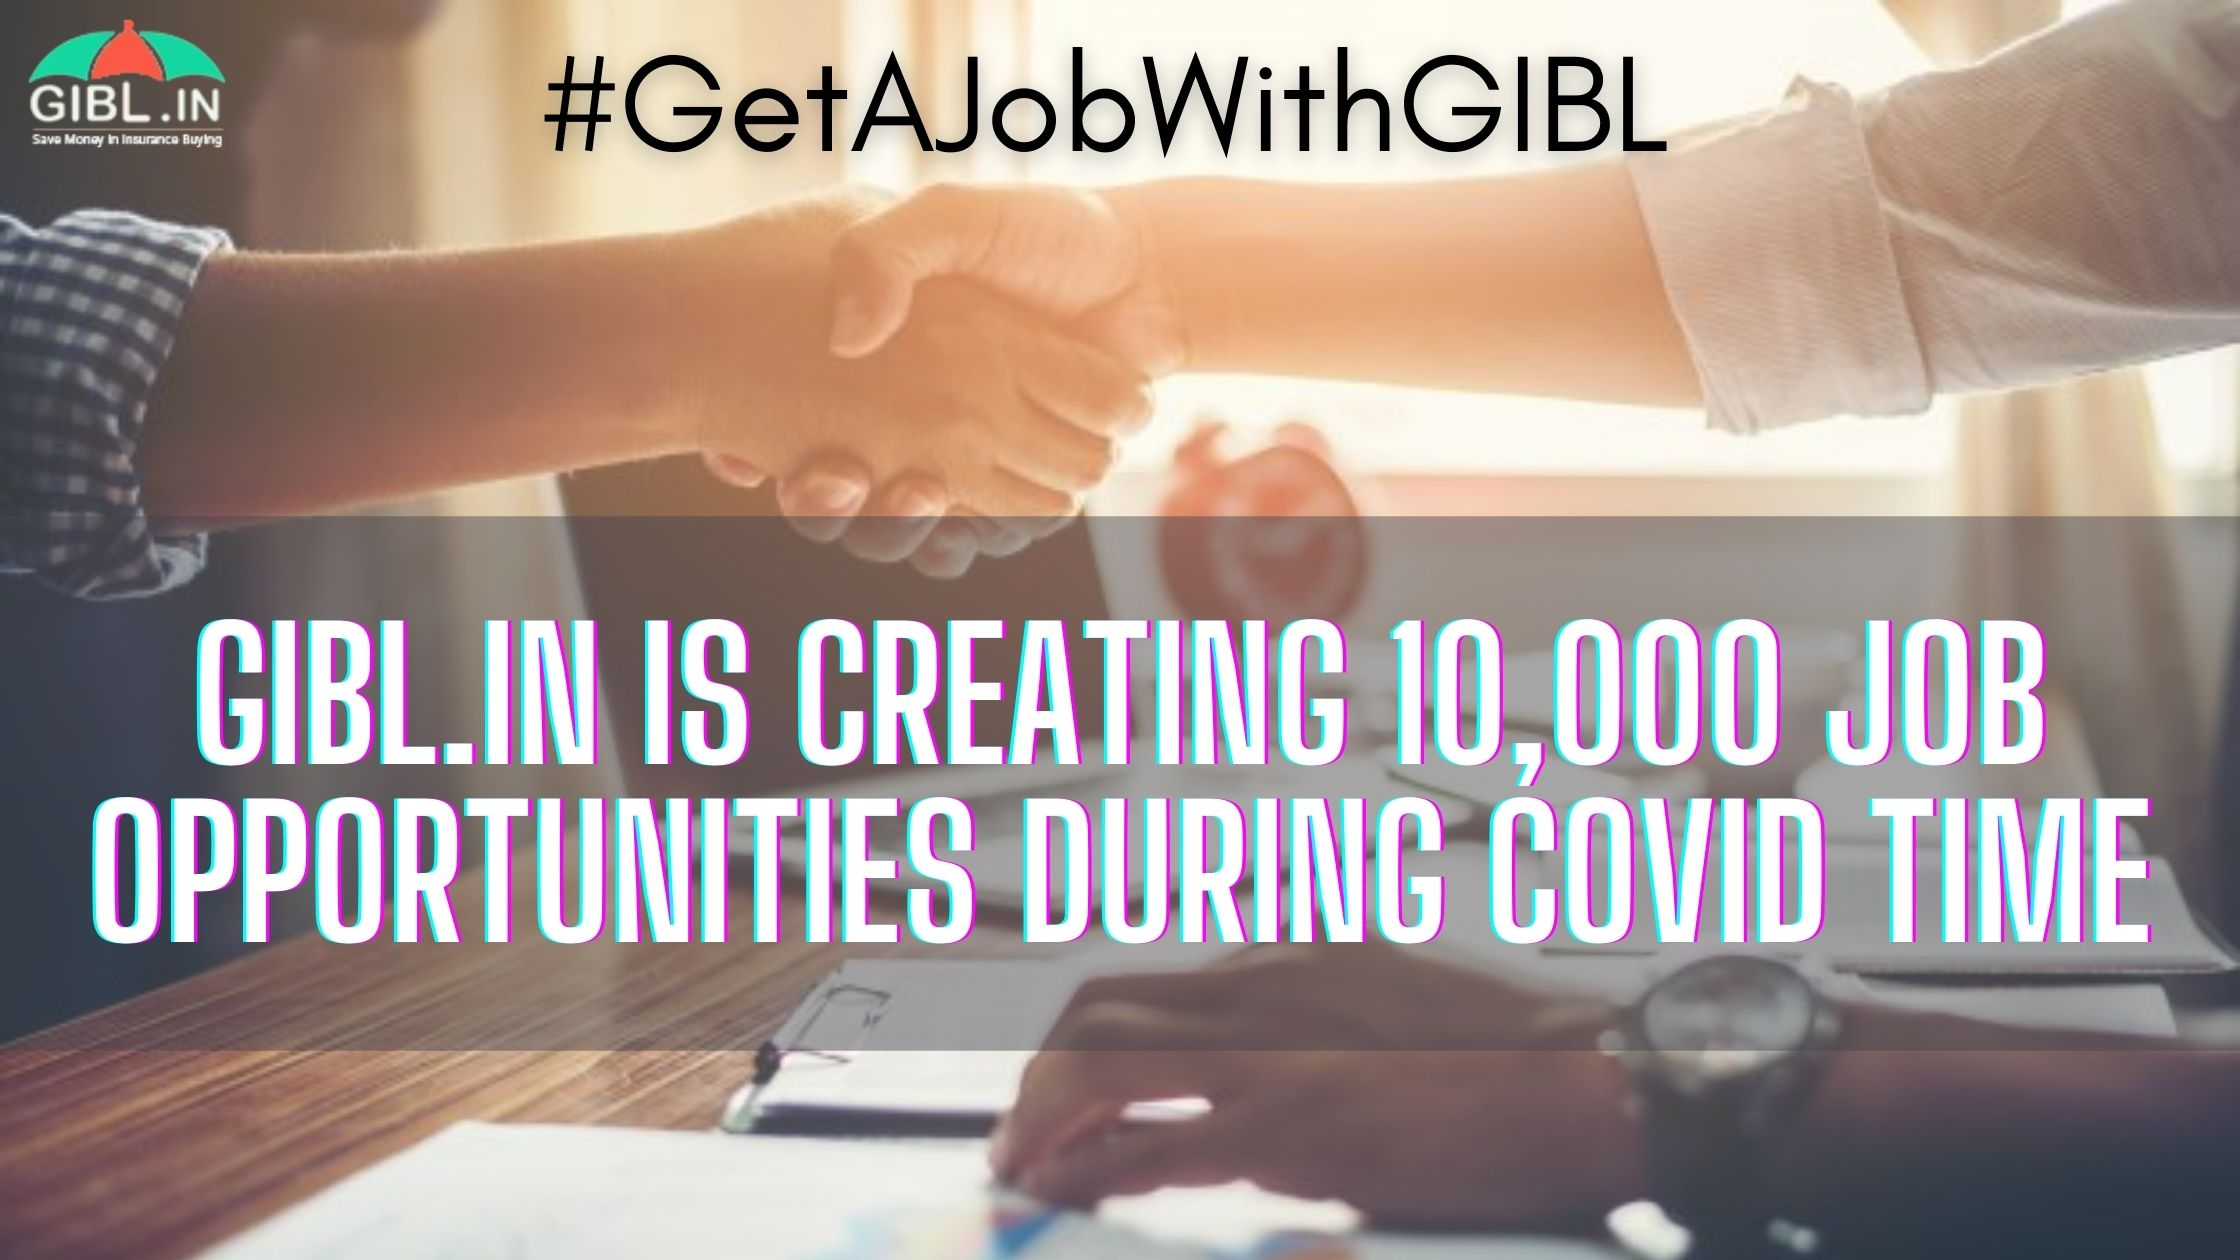 GIBL.IN Is Creating 10,000 Job Opportunities During COVID Time - #GetAJobWithGIBL